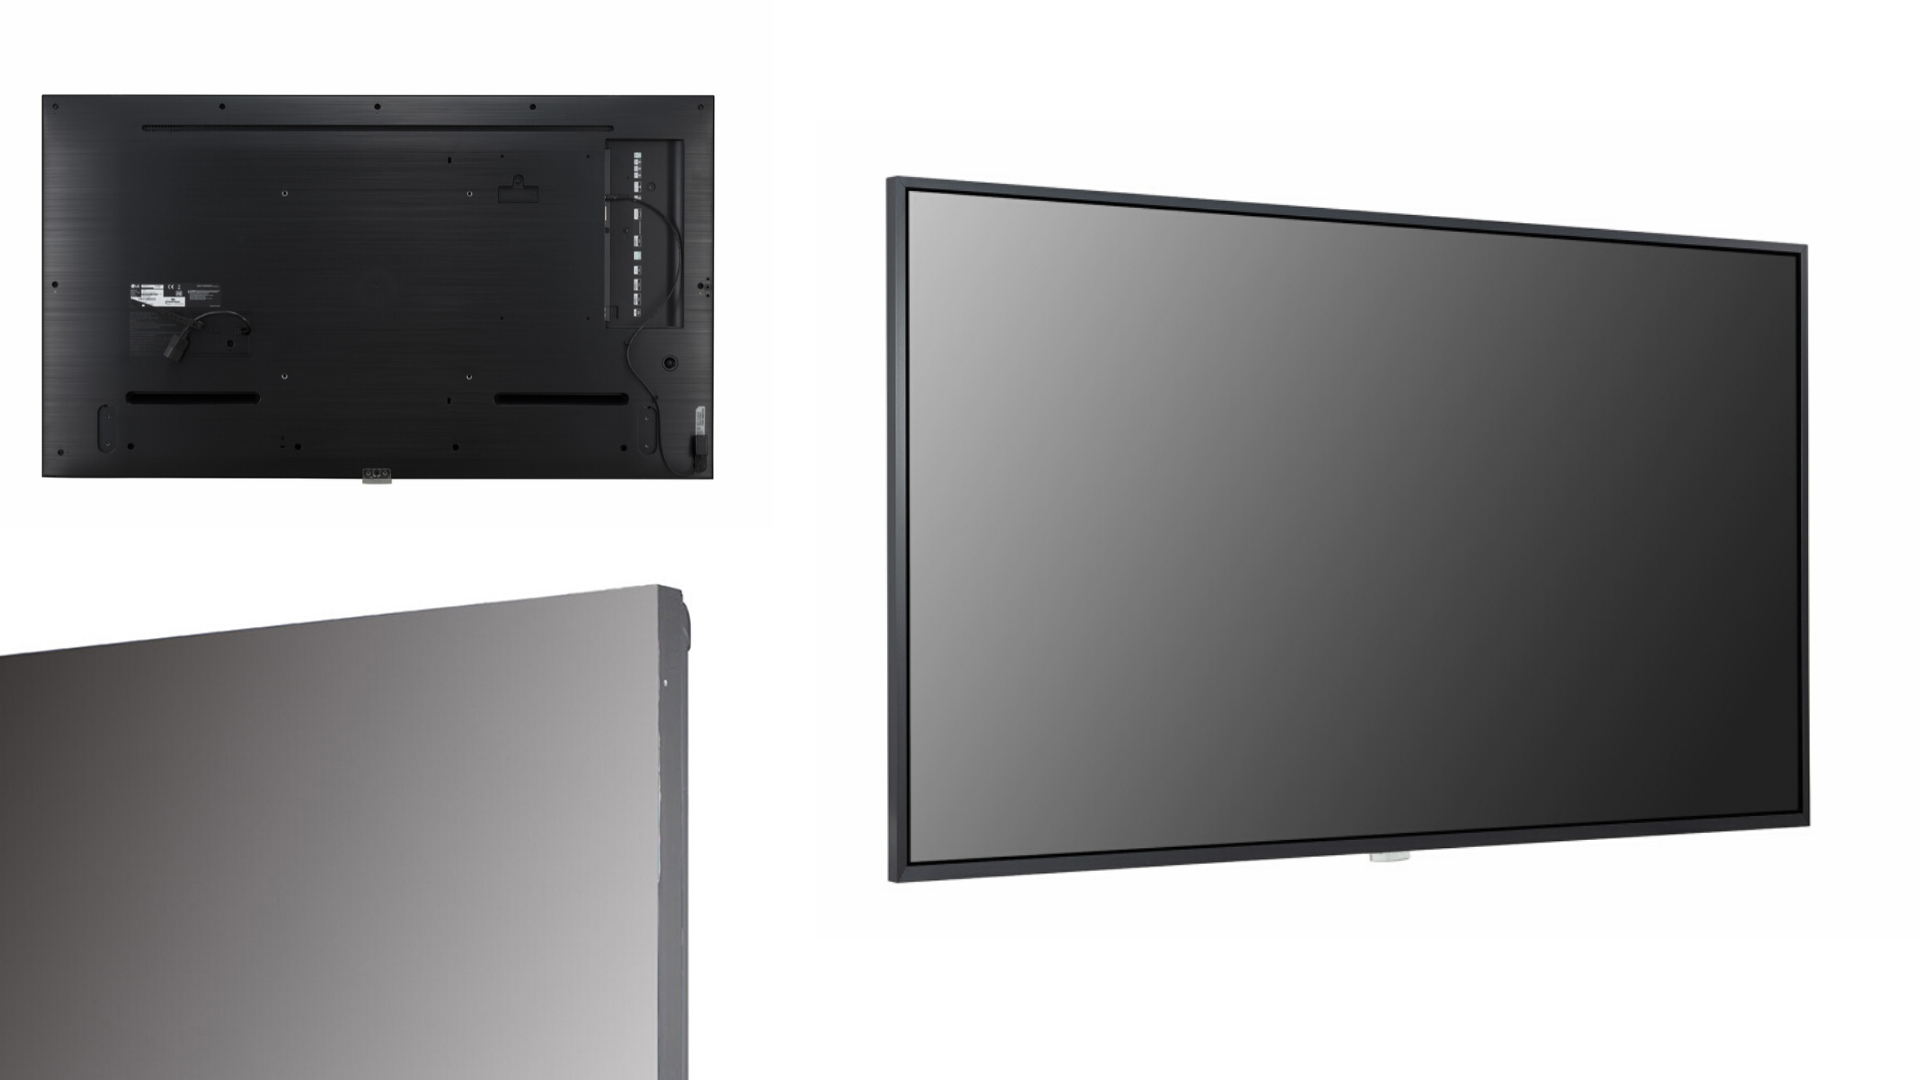 commercial disply enclosure ose9smkjacs5uiuvwd20d0t8nr5wugf78eizs93vao - Why Choose Commercial TV Display